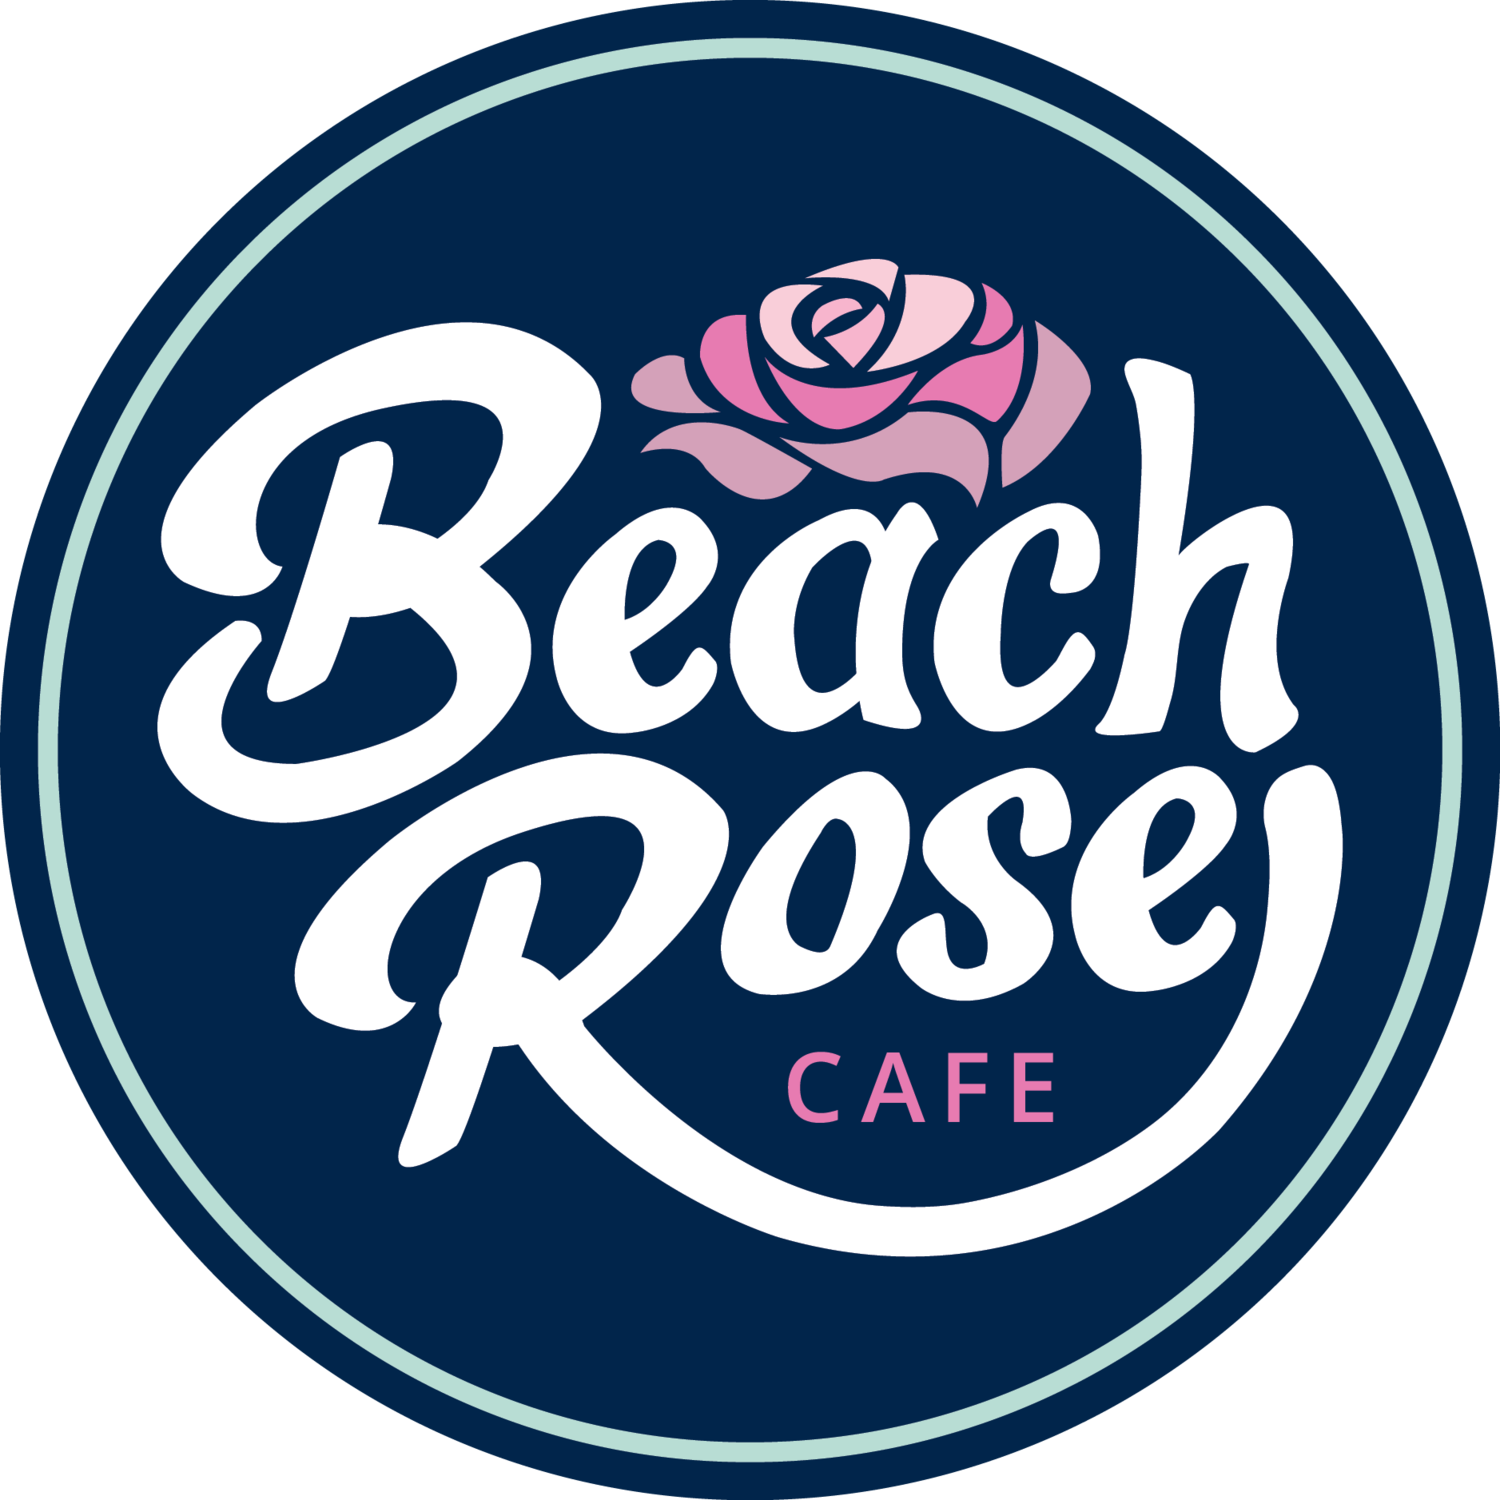 Beach Rose Cafe